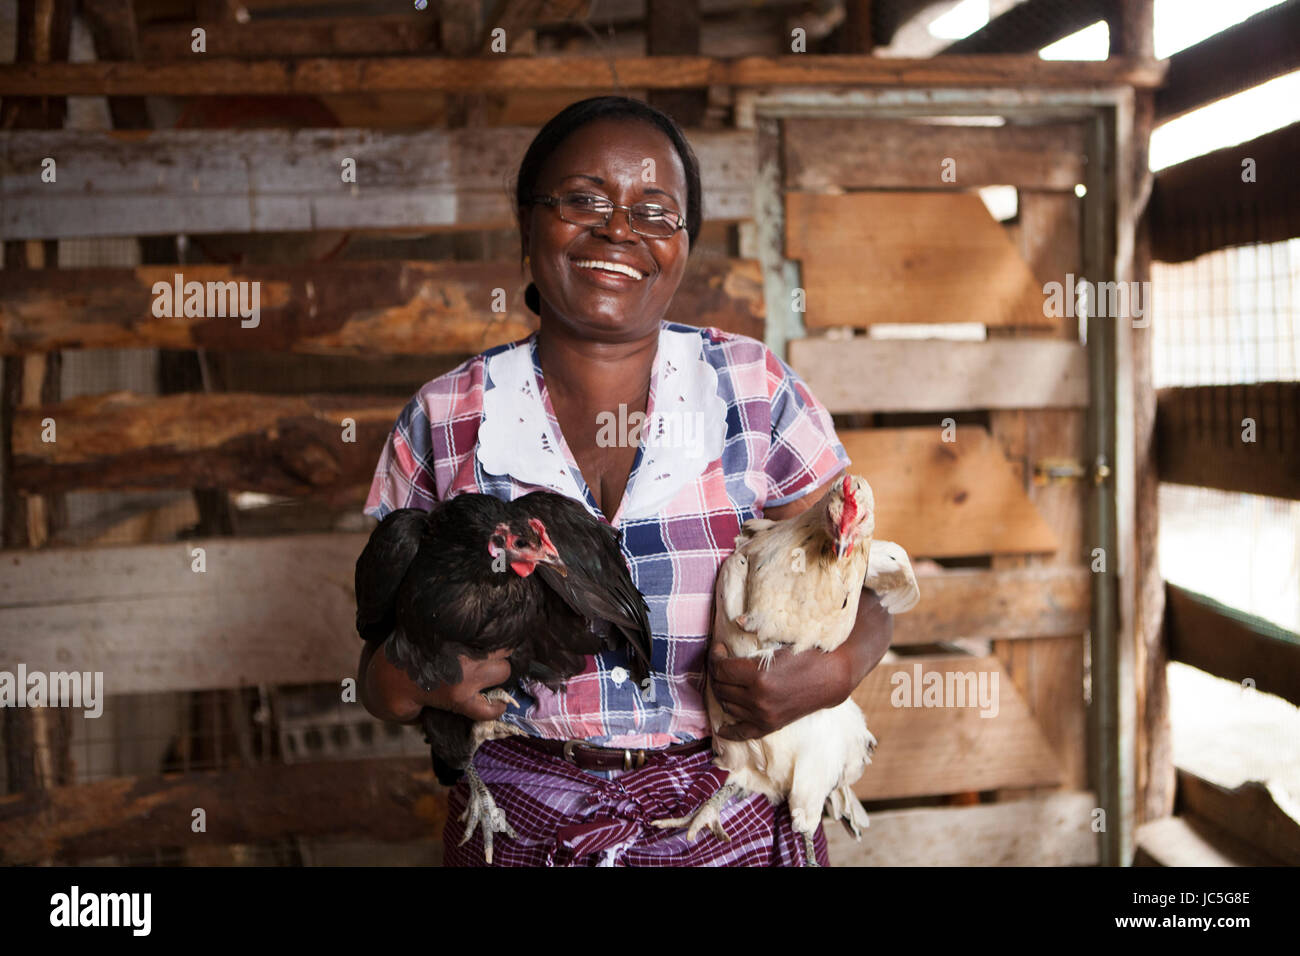 A female small business poultry farmer in Tanzania, Africa. - Stock Image